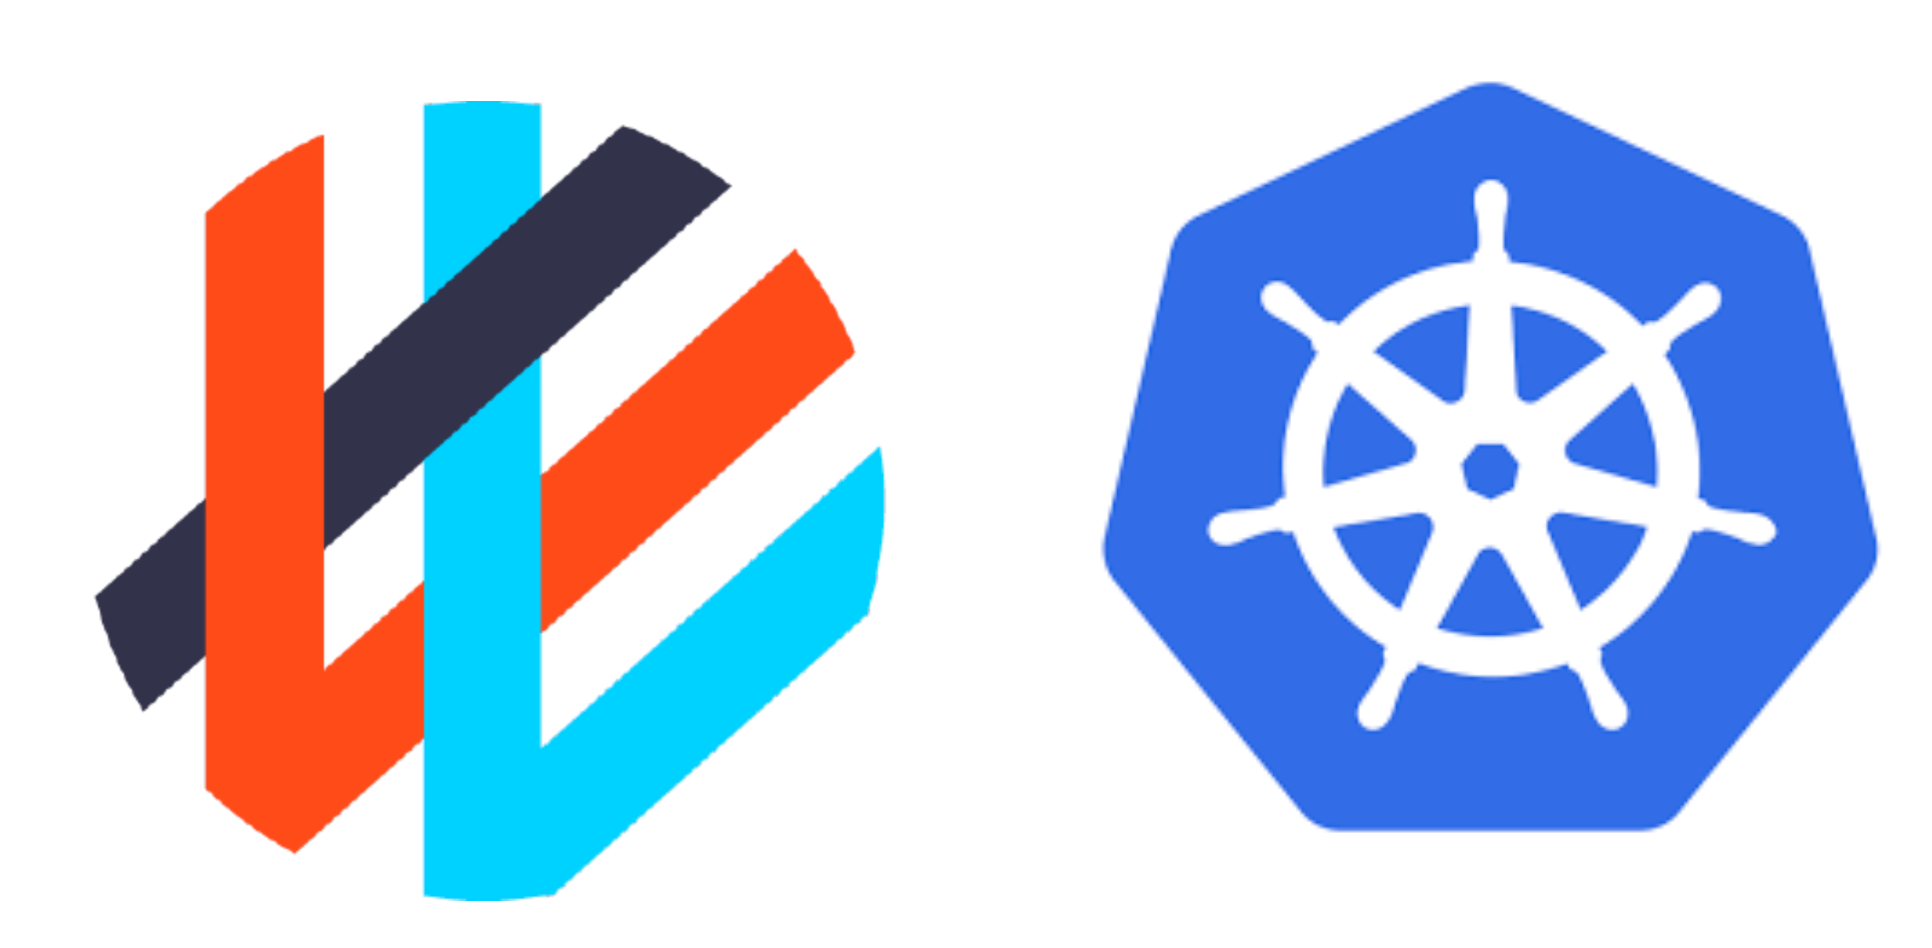 How to Create a Kubernetes Cluster on Ubuntu 16.04 with kubeadm and Weave Net